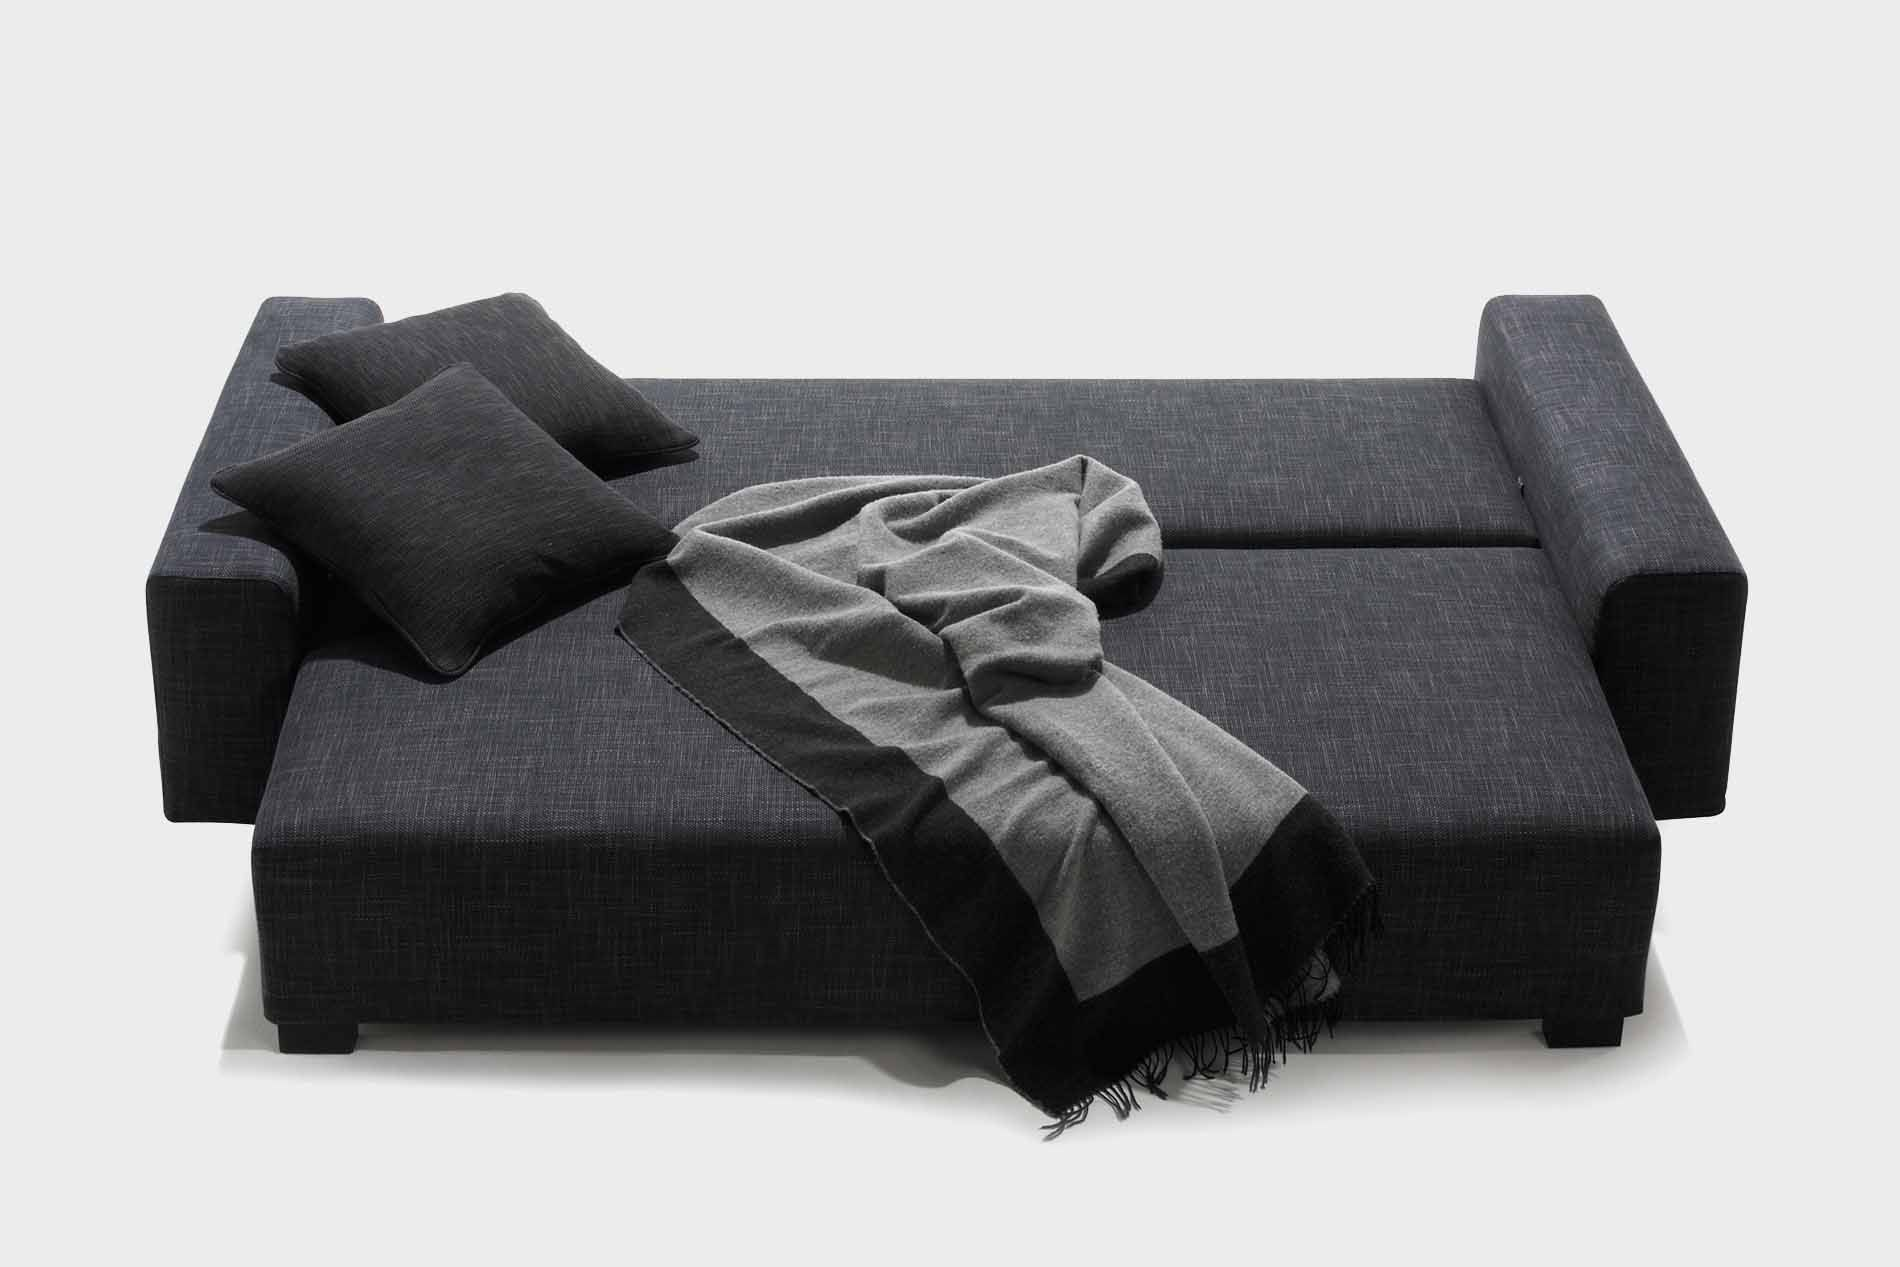 Schlafsofa Cor Schlafsofa 200 Deutsche Pinterest Sofa Bed Sofa And Couch